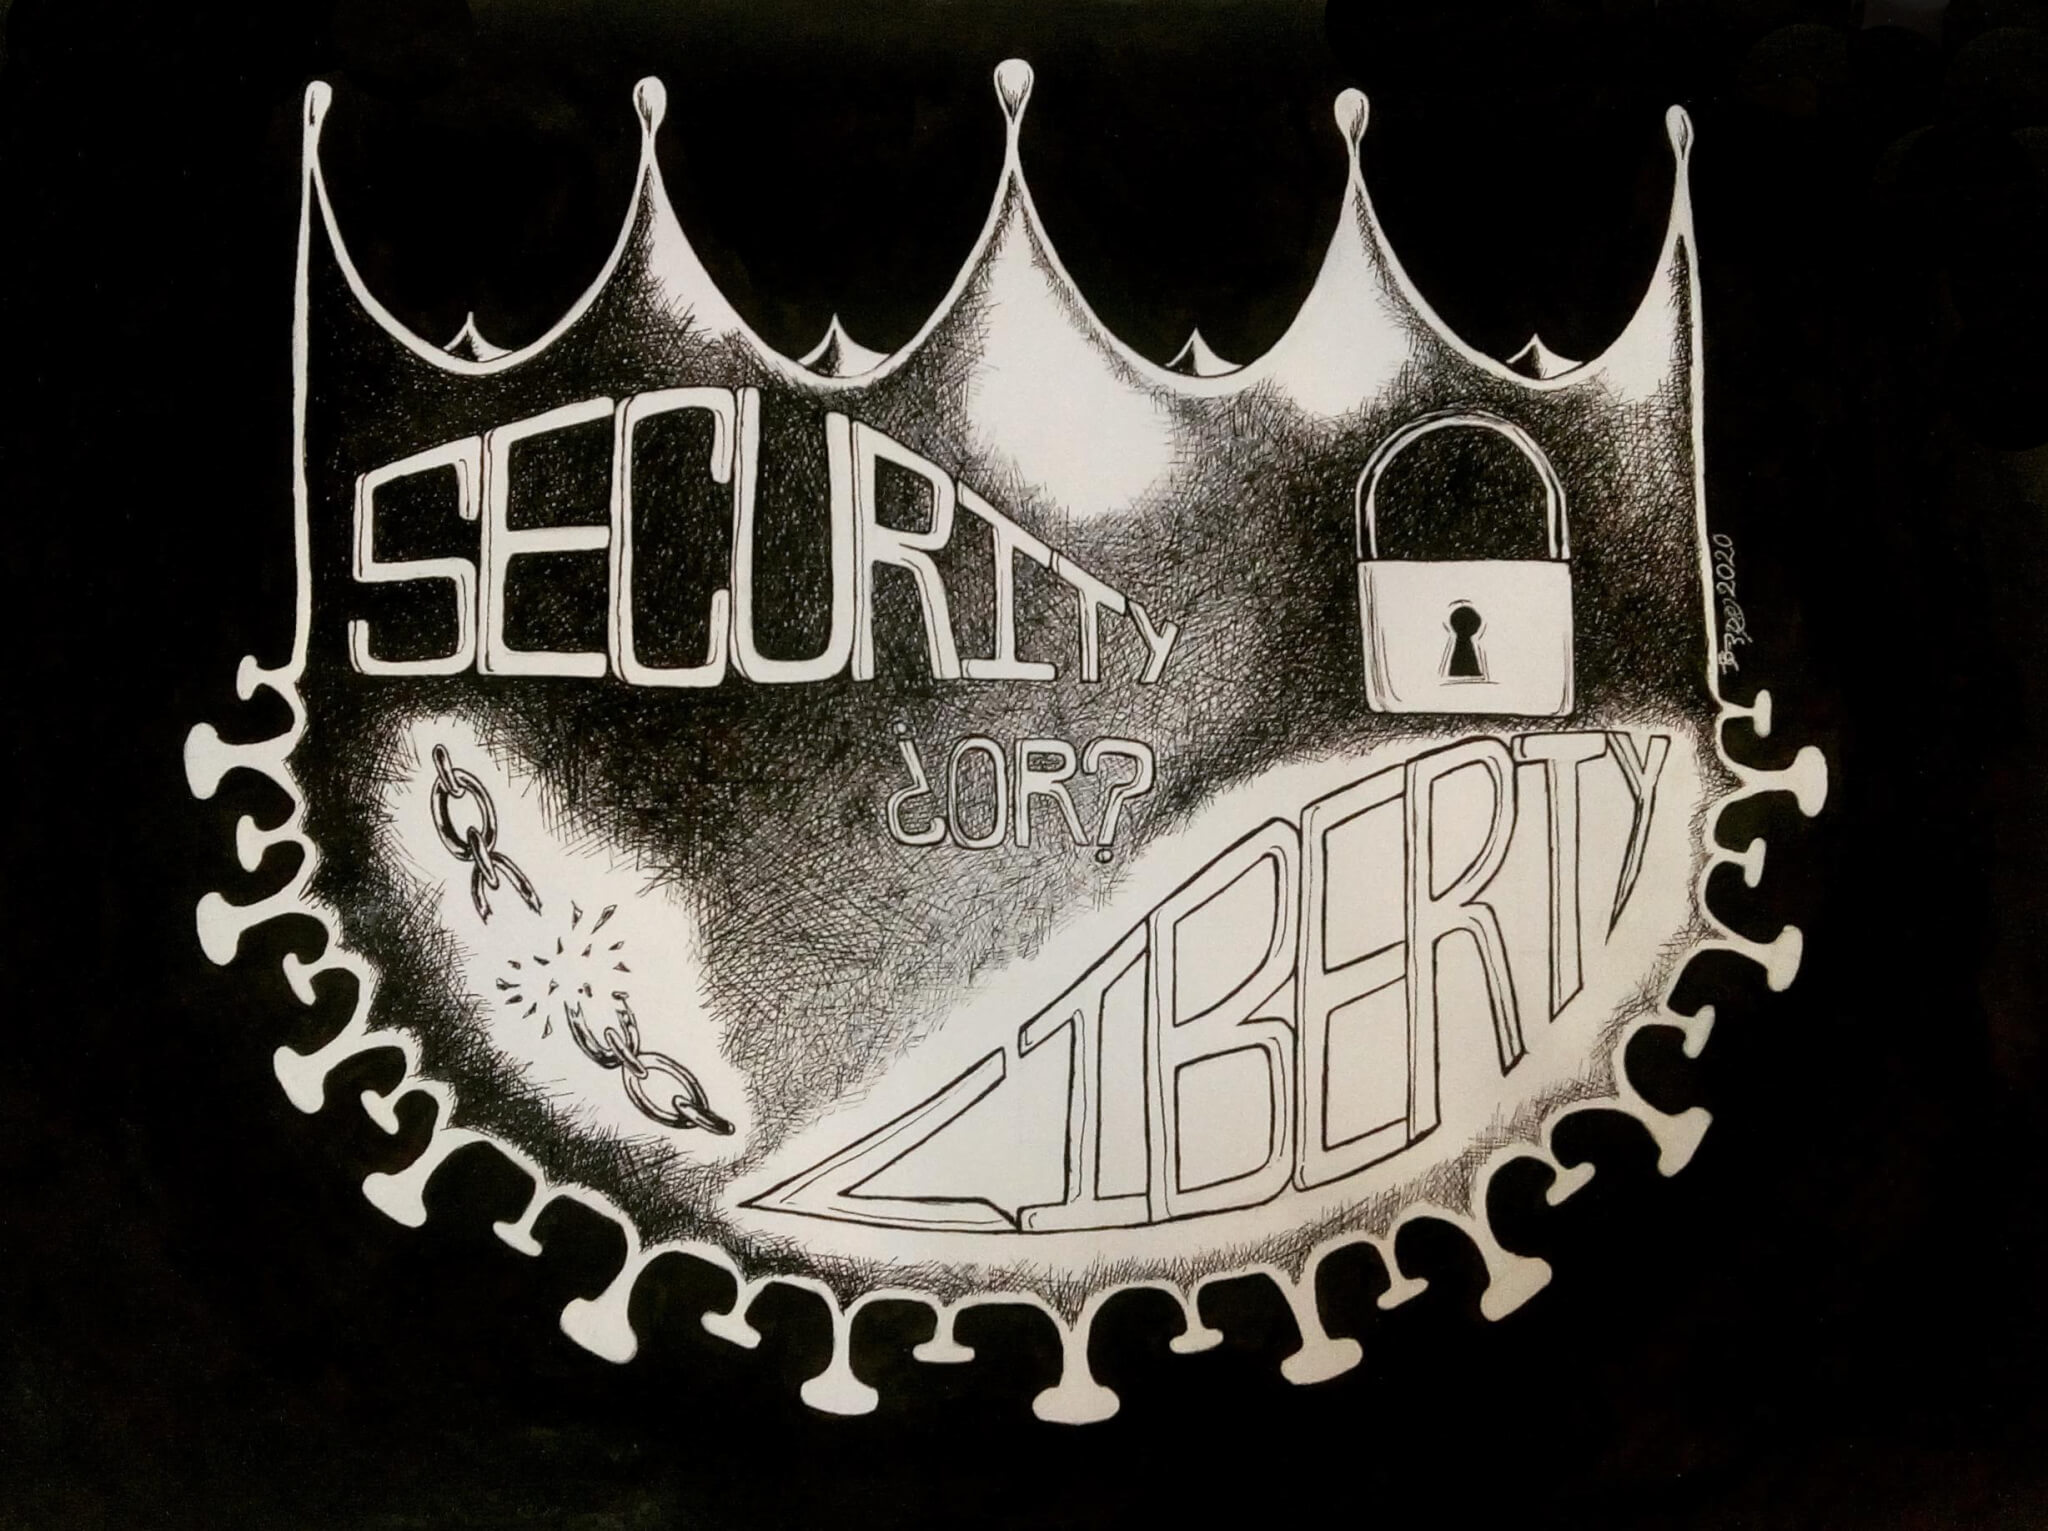 10: Security or Liberty?, by Deborah Garcia